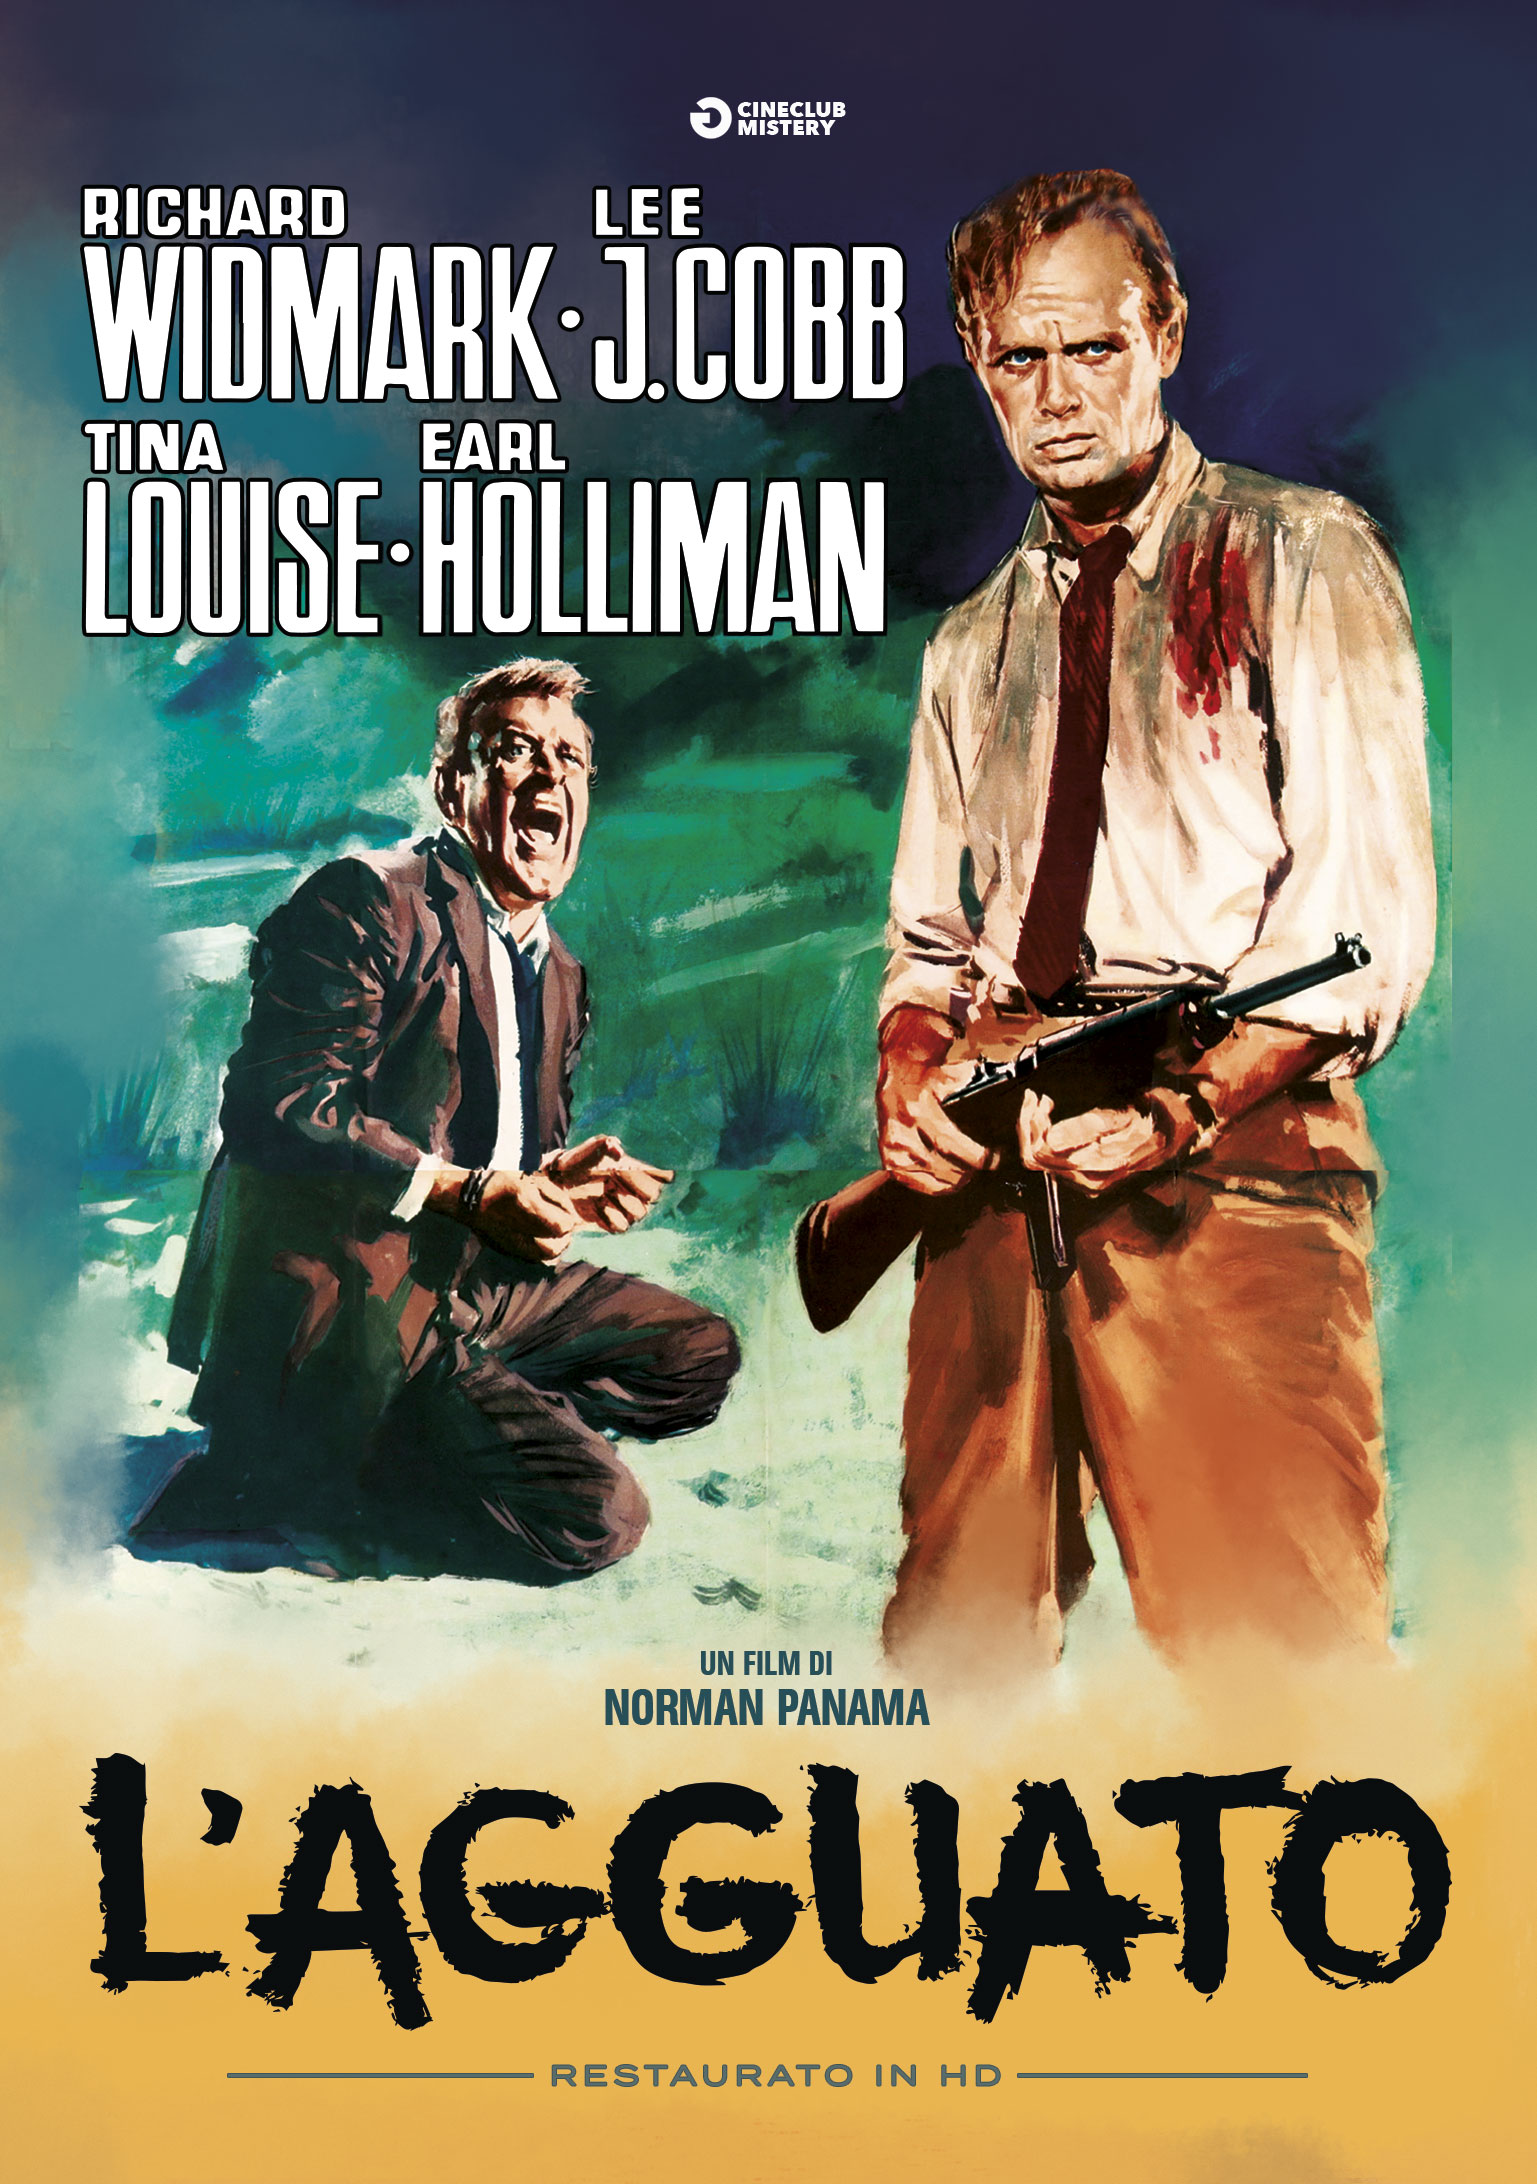 L'AGGUATO (RESTAURATO IN HD) (DVD)